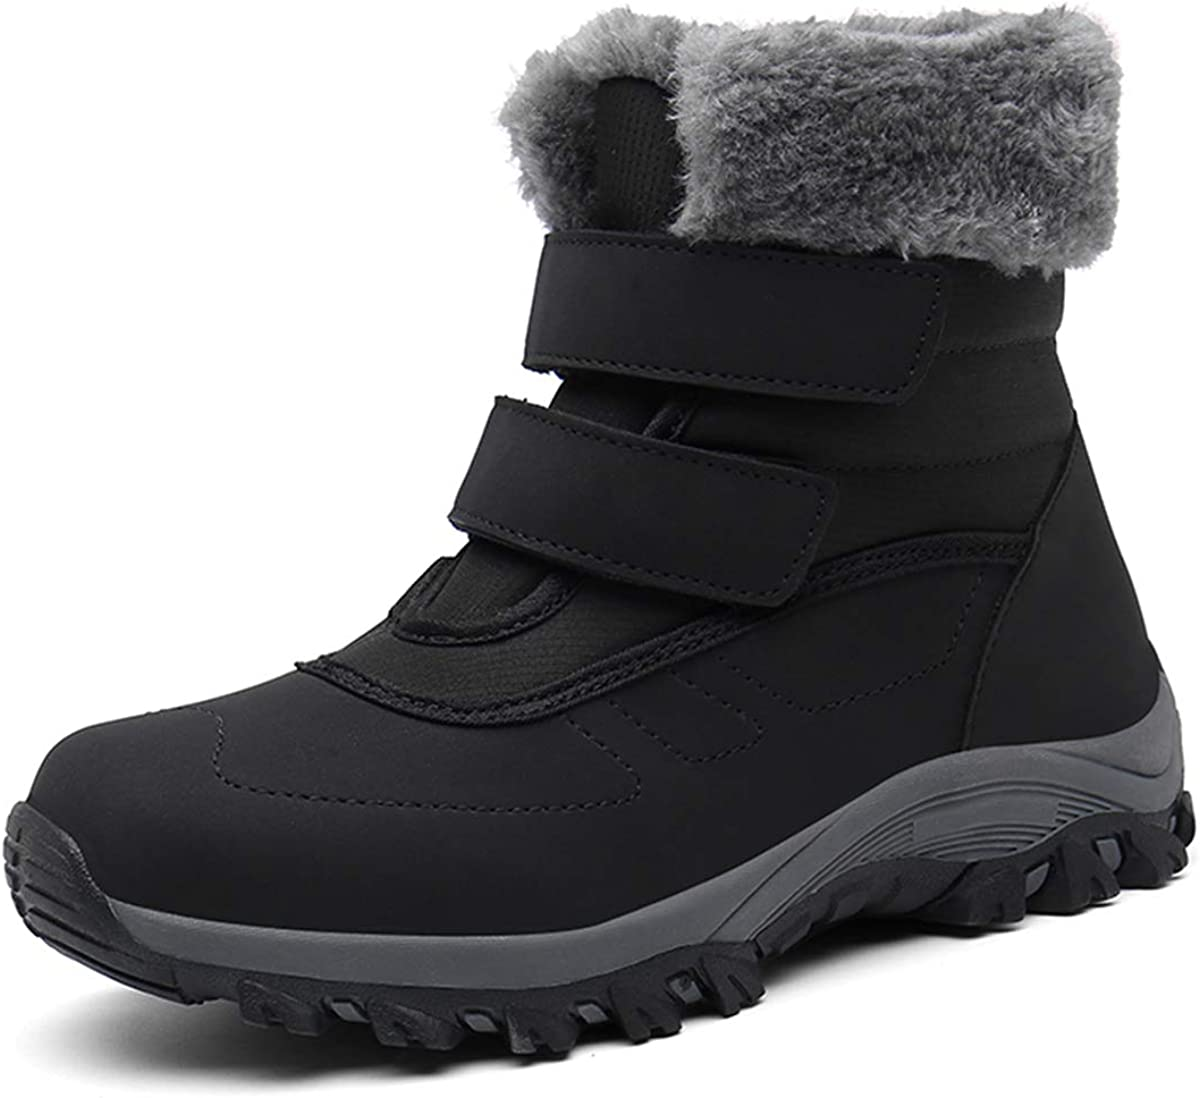 Drecage Women's Snow Bootswith Warm Fur Lining Winter Waterproof Shoes Anti-Slip Outdoor Ankle Boots